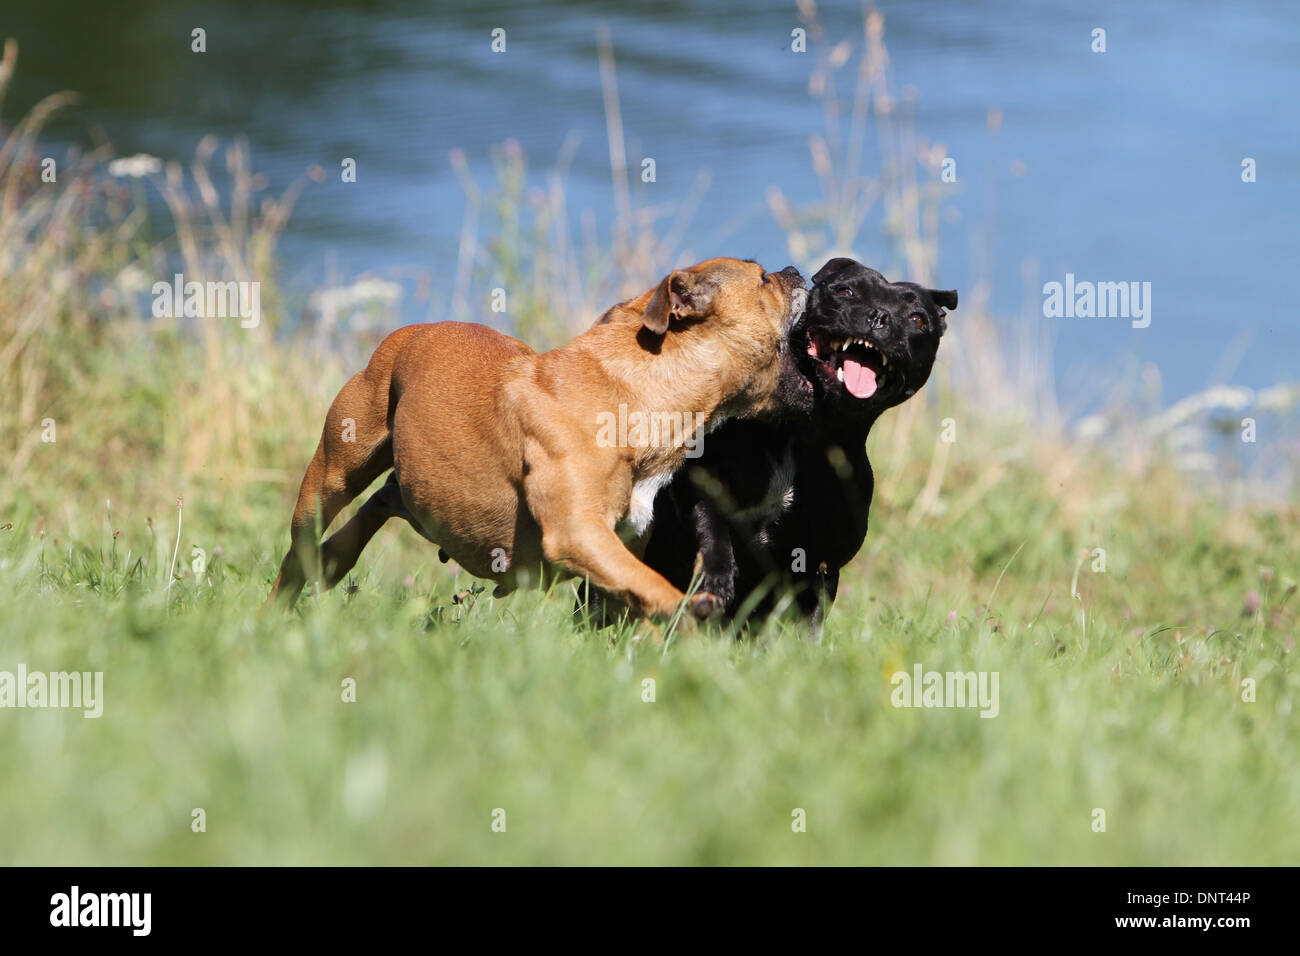 dog Staffordshire Bull Terrier / Staffie  /  two adults running in a meadow - Stock Image